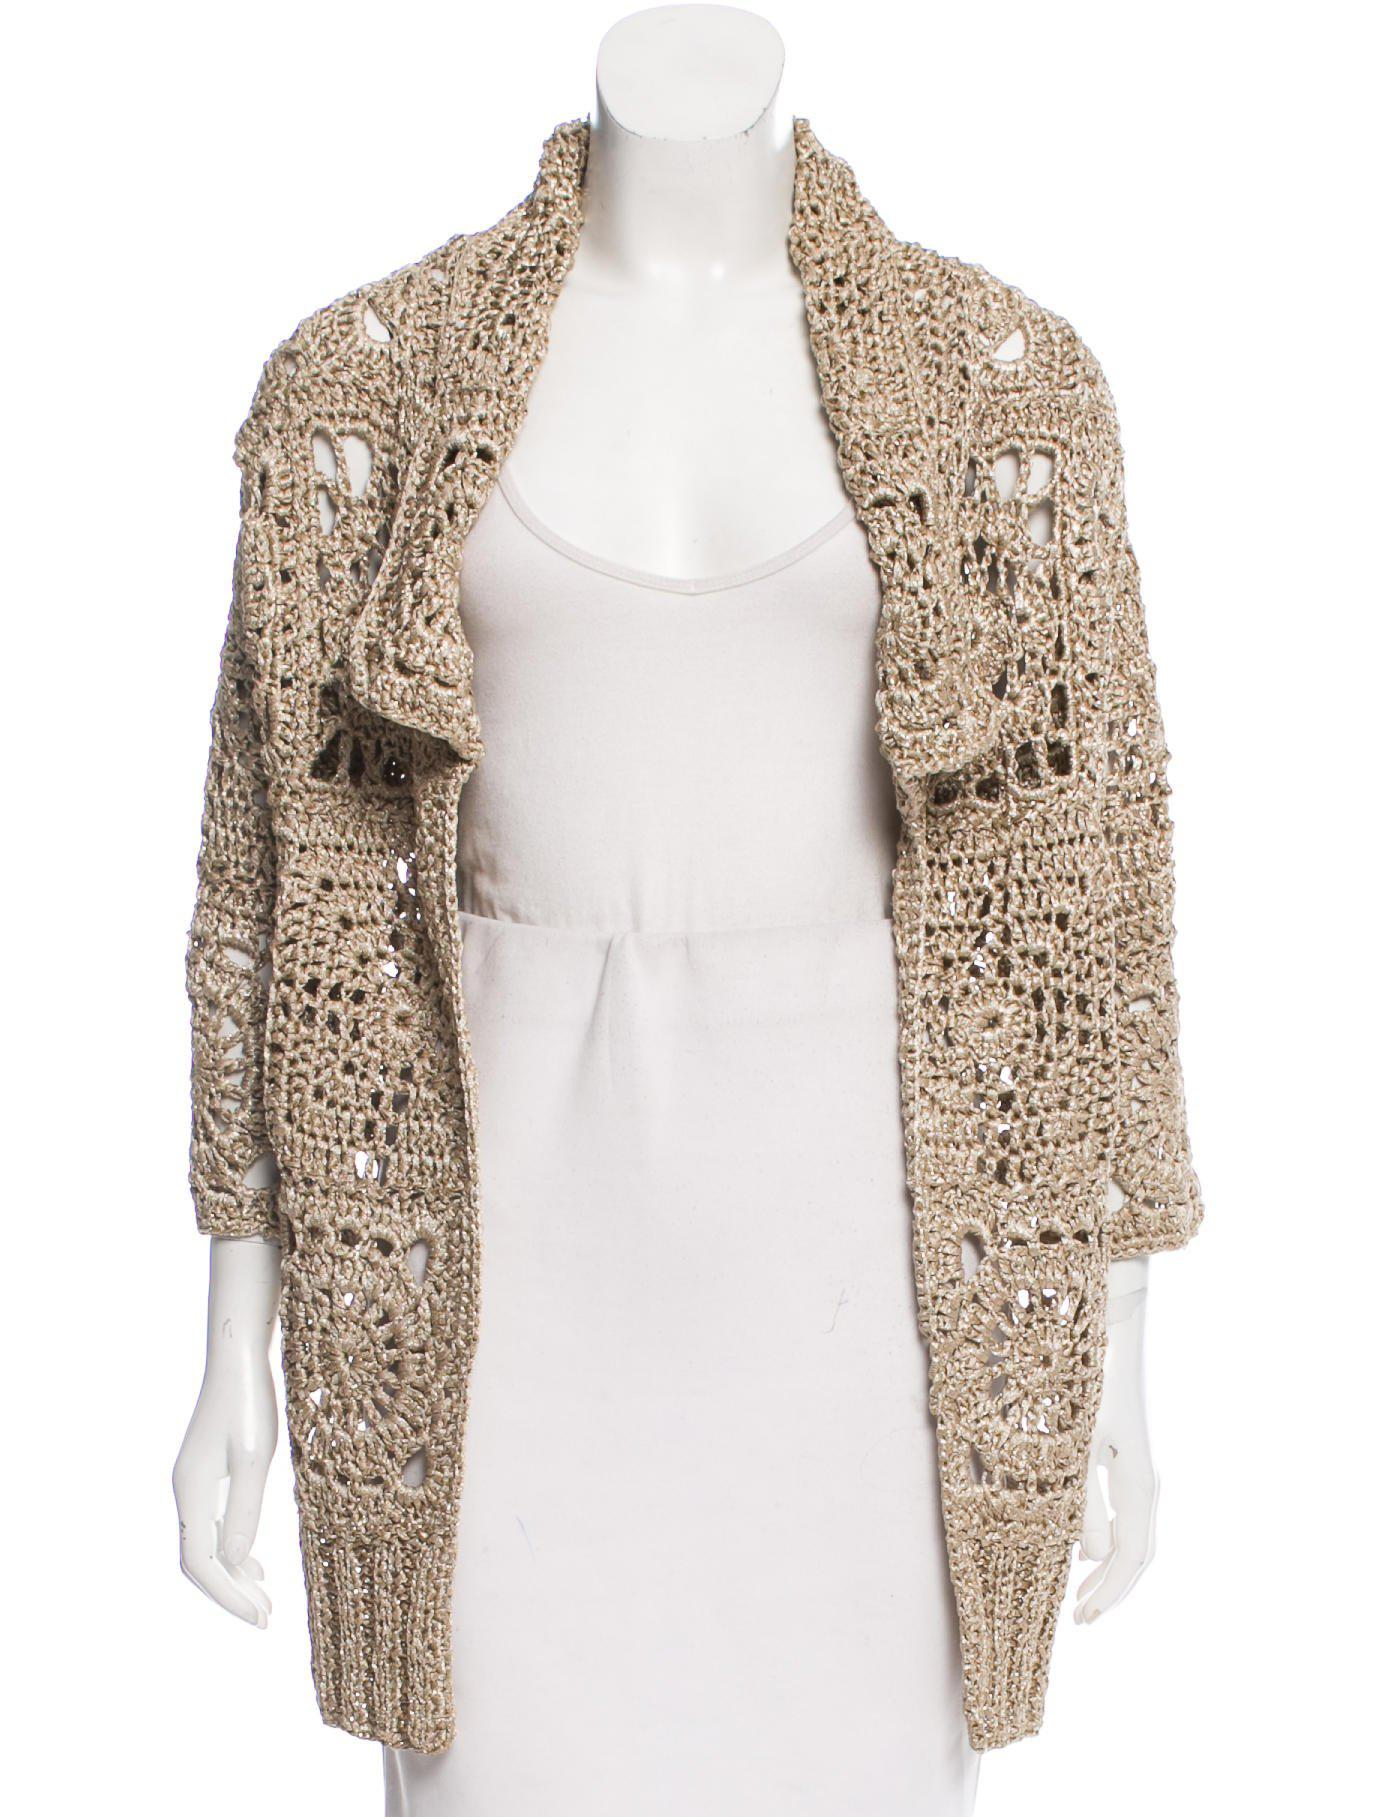 Dries van noten Open Front Cardigan Gold in Metallic | Lyst